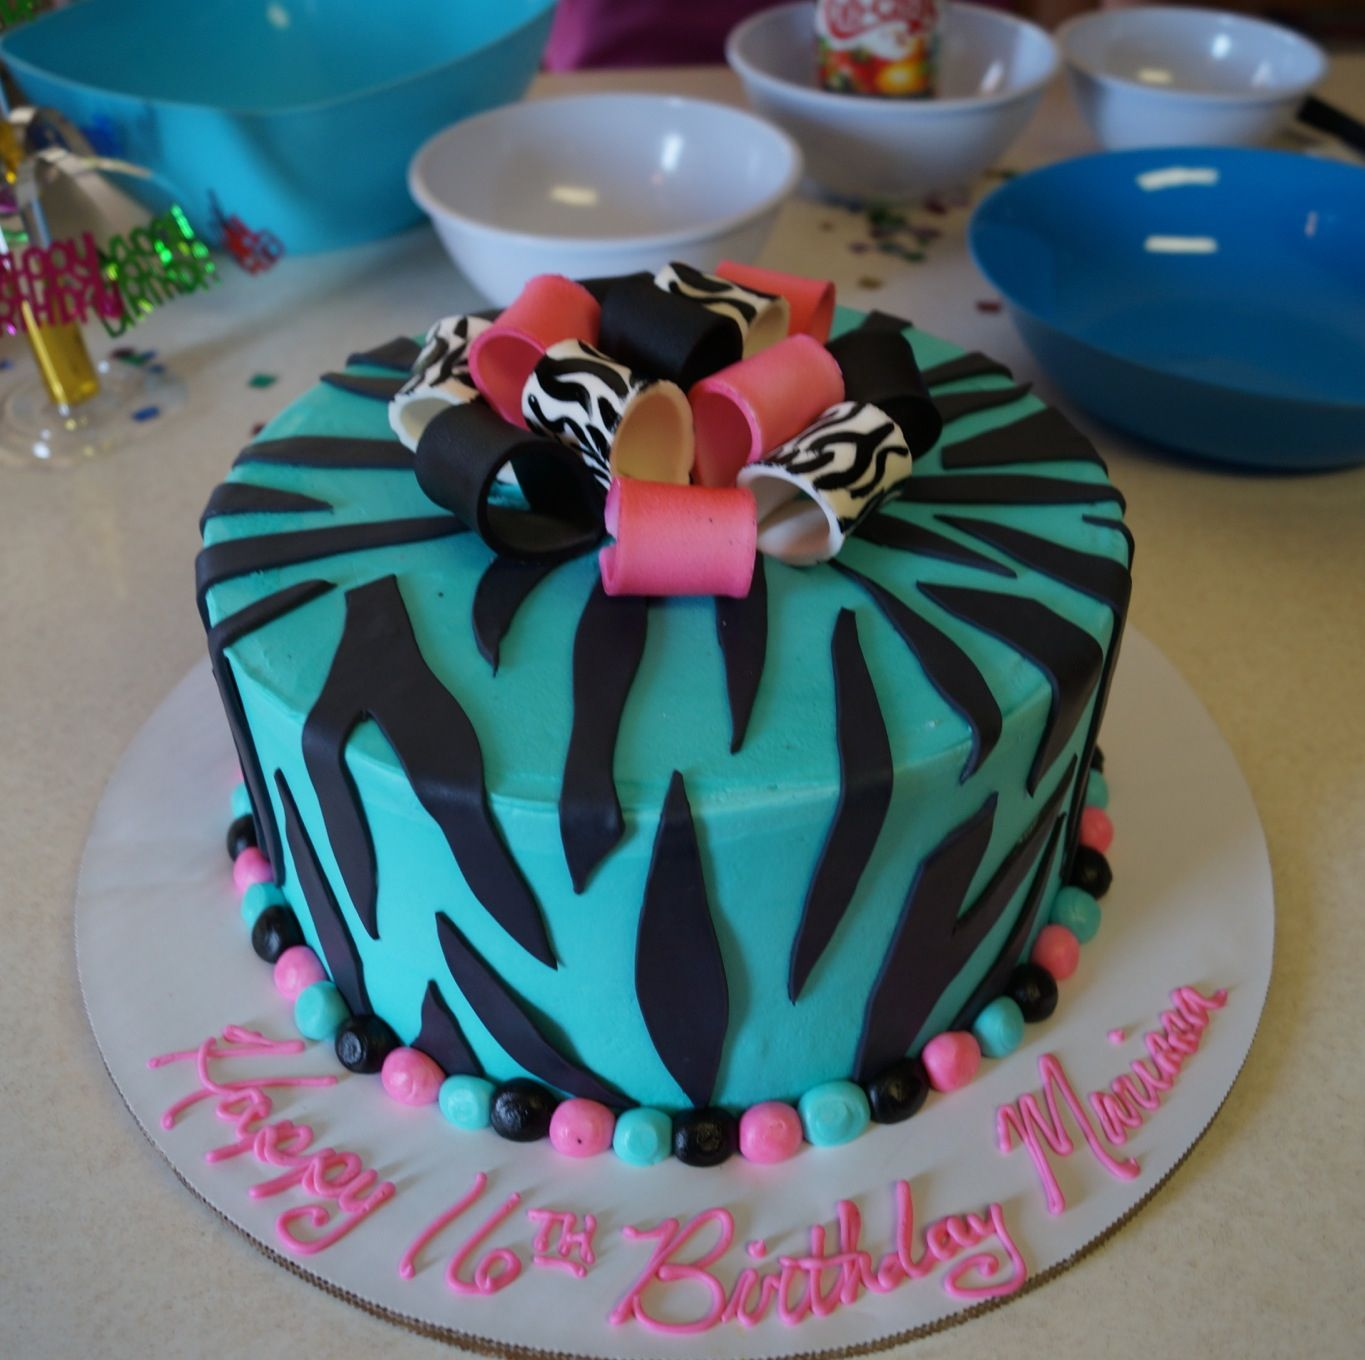 Awesome Bday Cake Images : Awesome birthday cake Sweets Pinterest